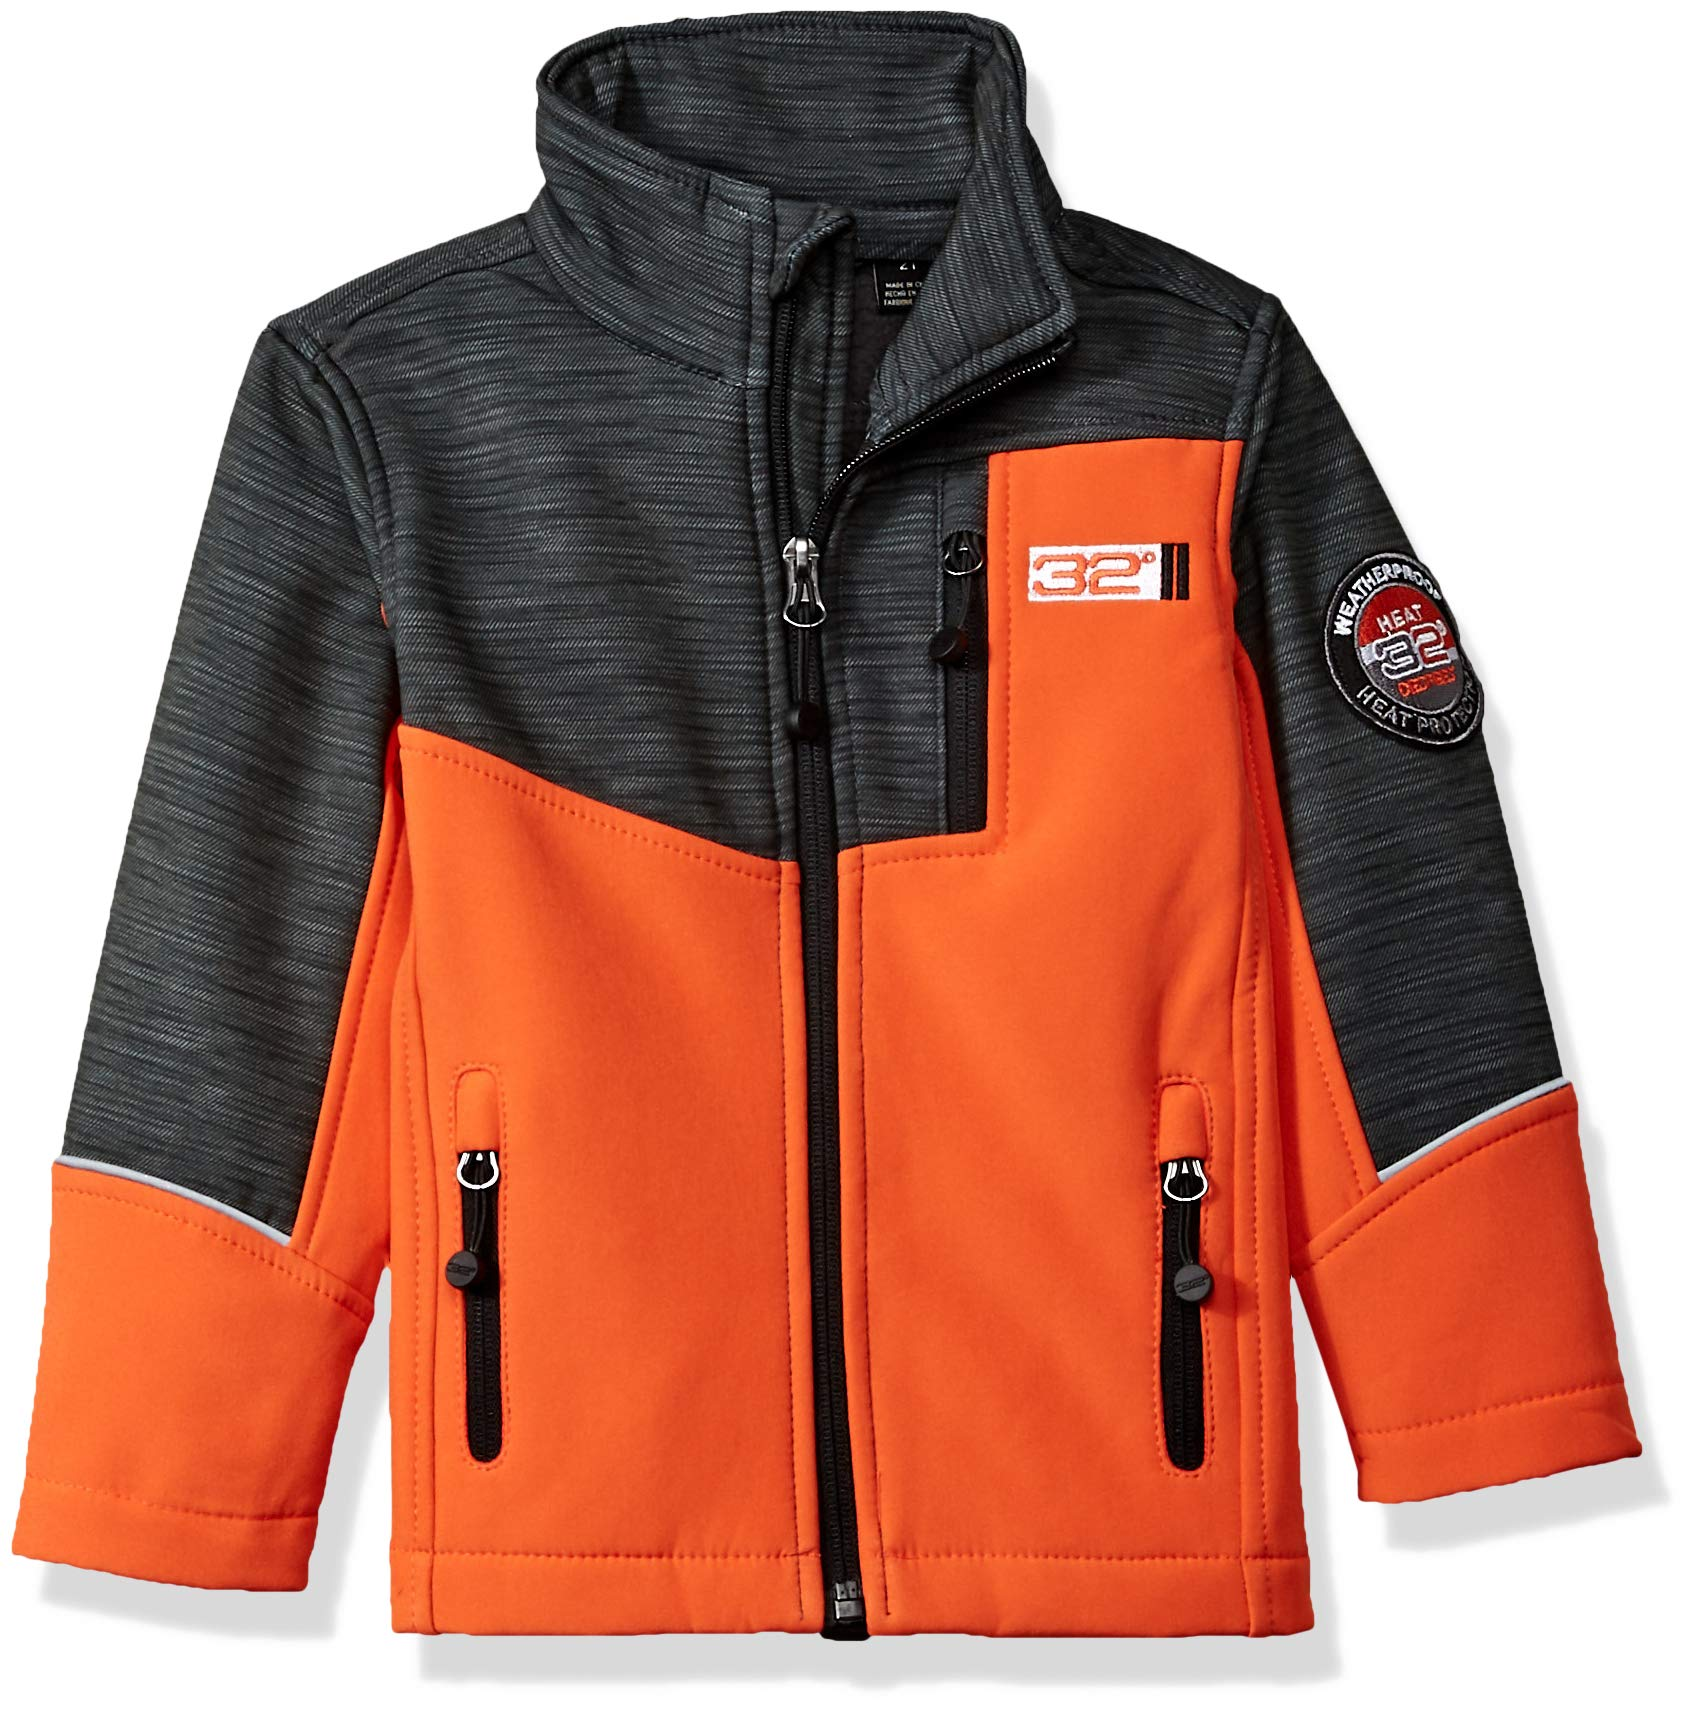 32 DEGREES Weatherproof Weatherproof Little Boys Outerwear Jacket (More Styles Available), Zip Pockets Orange, 5/6